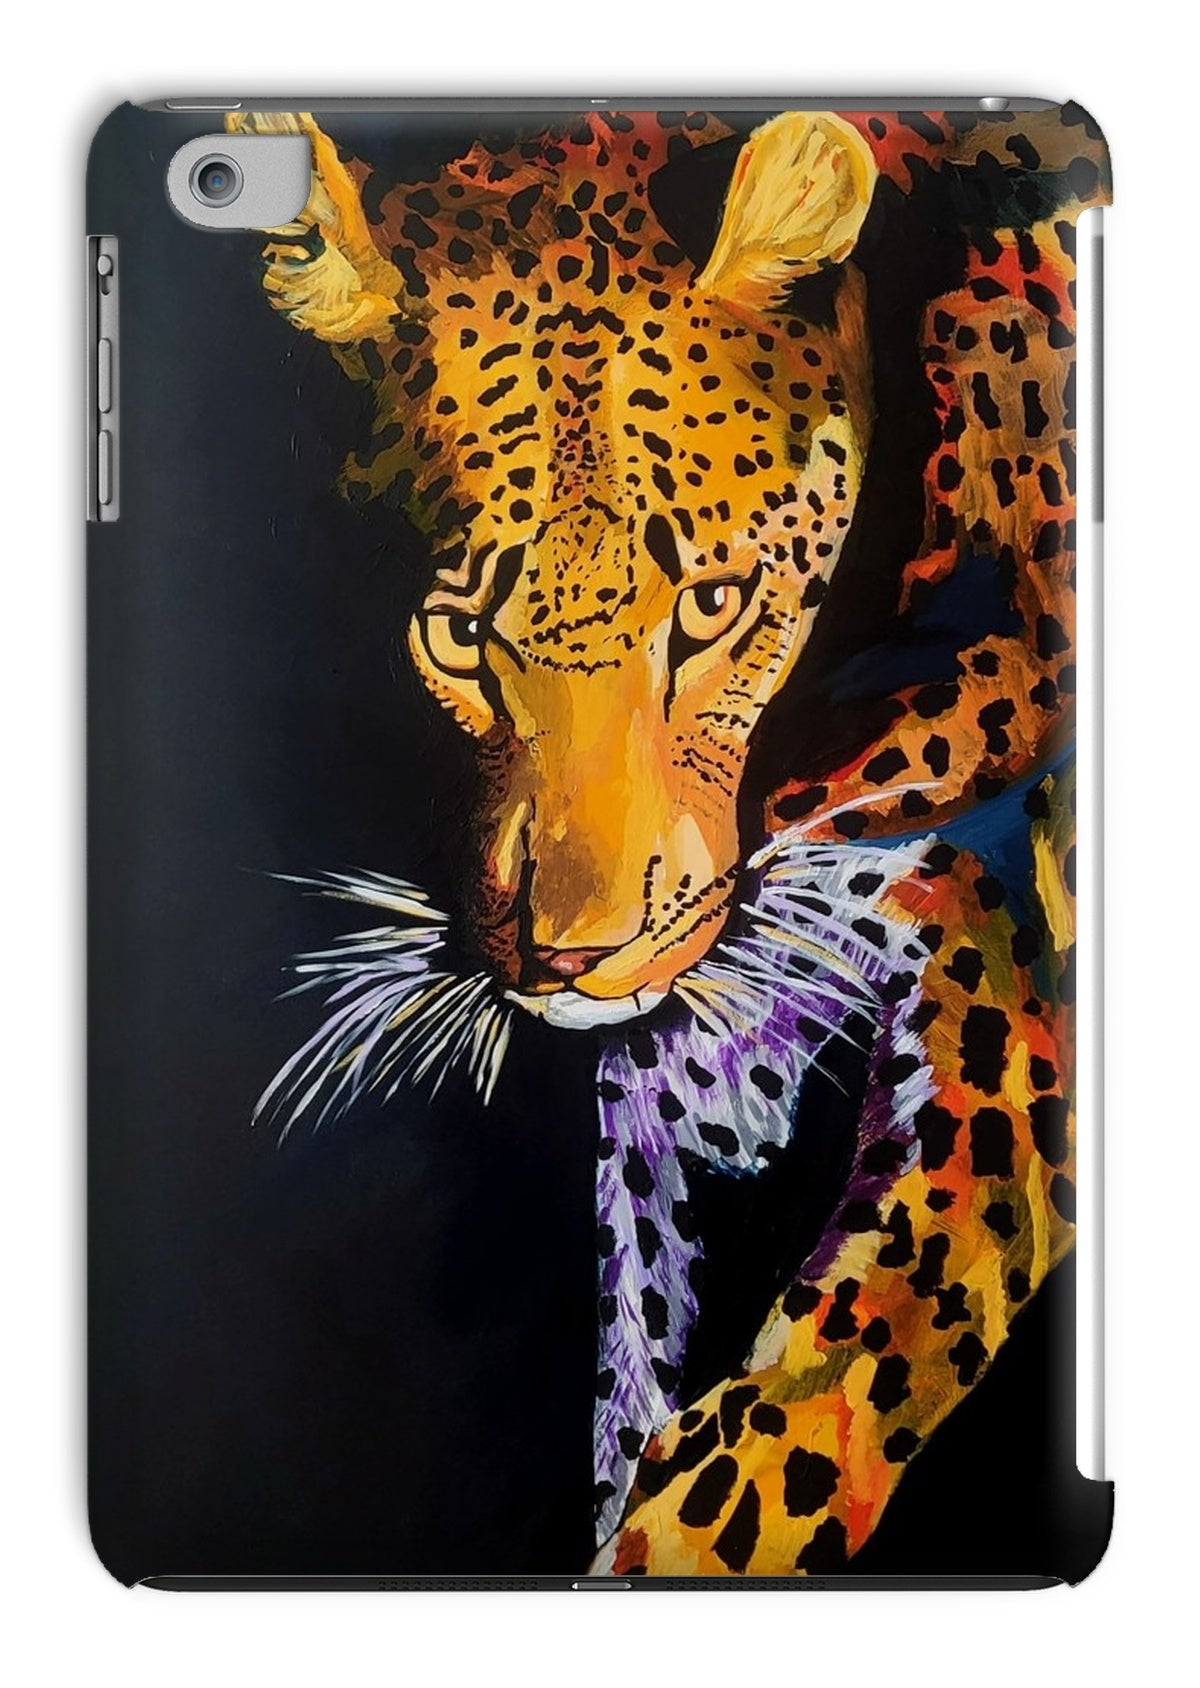 Leopard in Shadows Tablet Cases